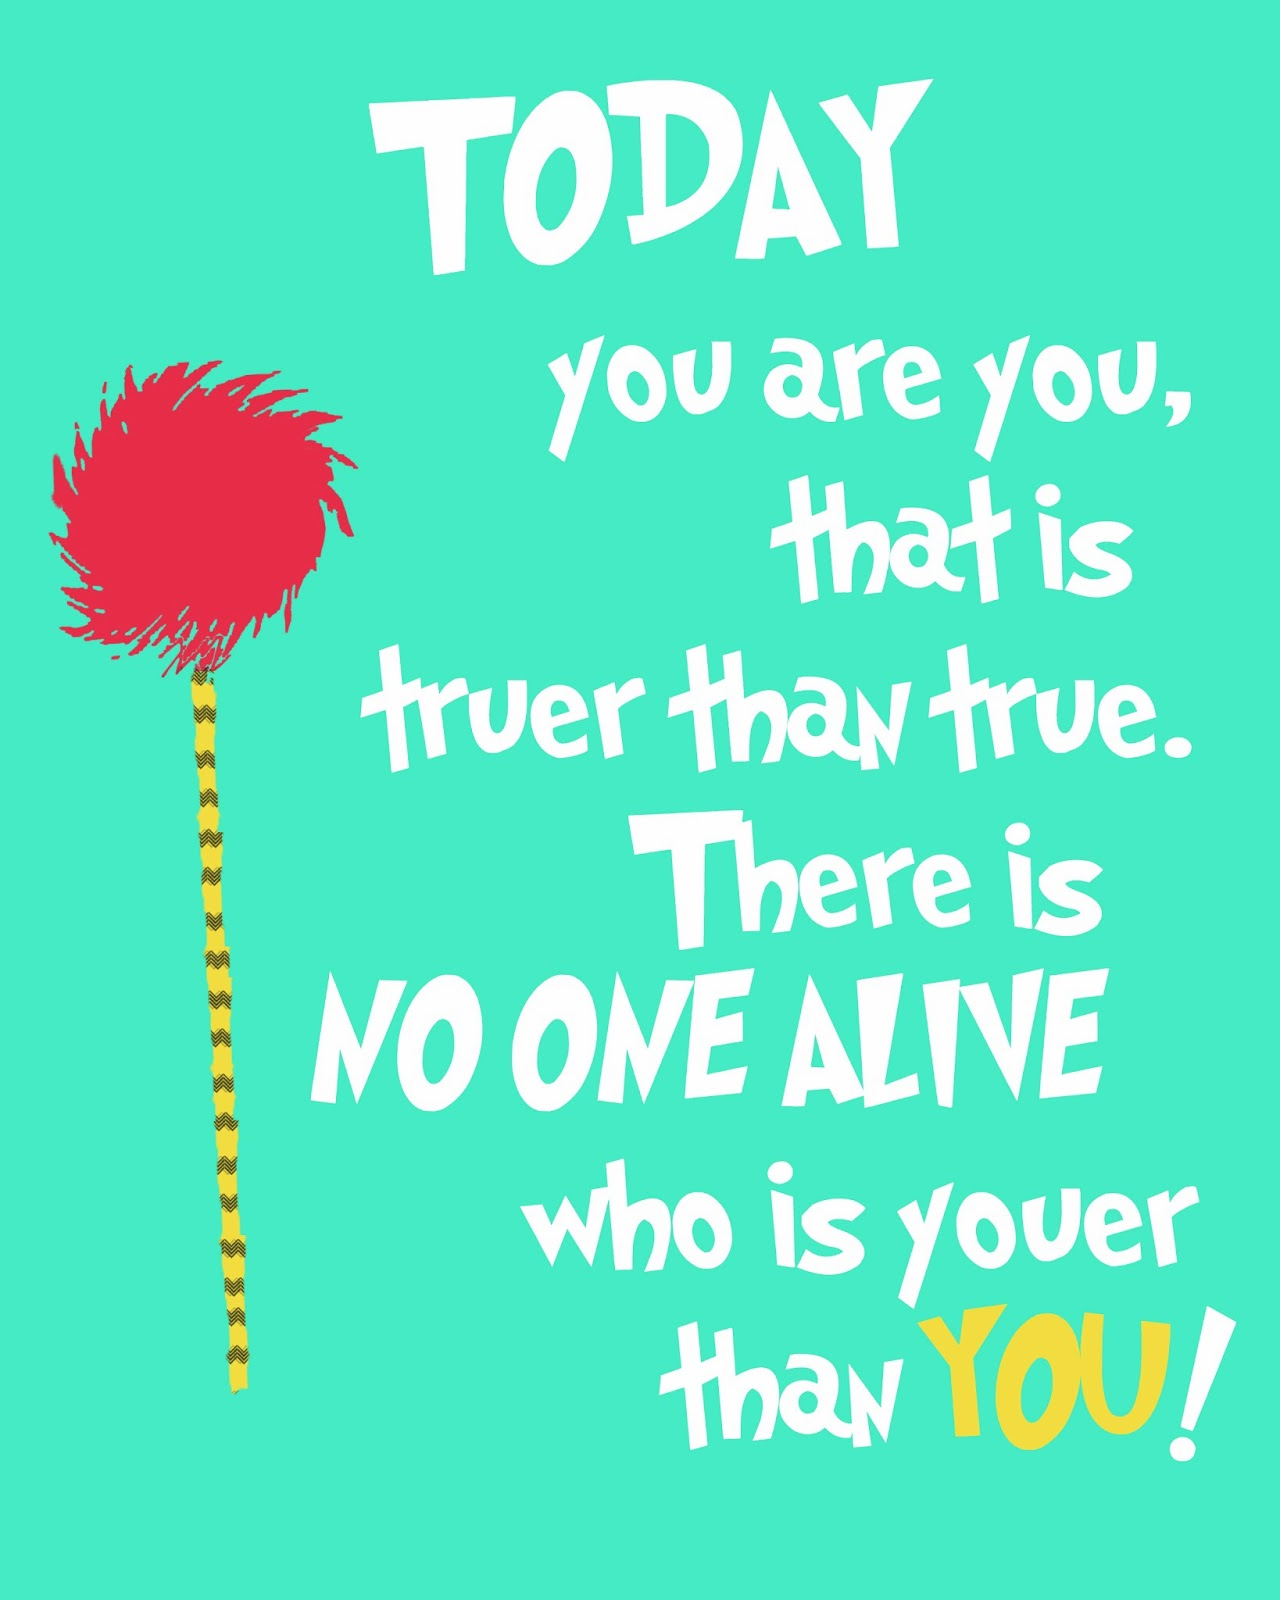 Dr Seuss Quotes About Love Free Printable Drseuss Posters  Craftbnb